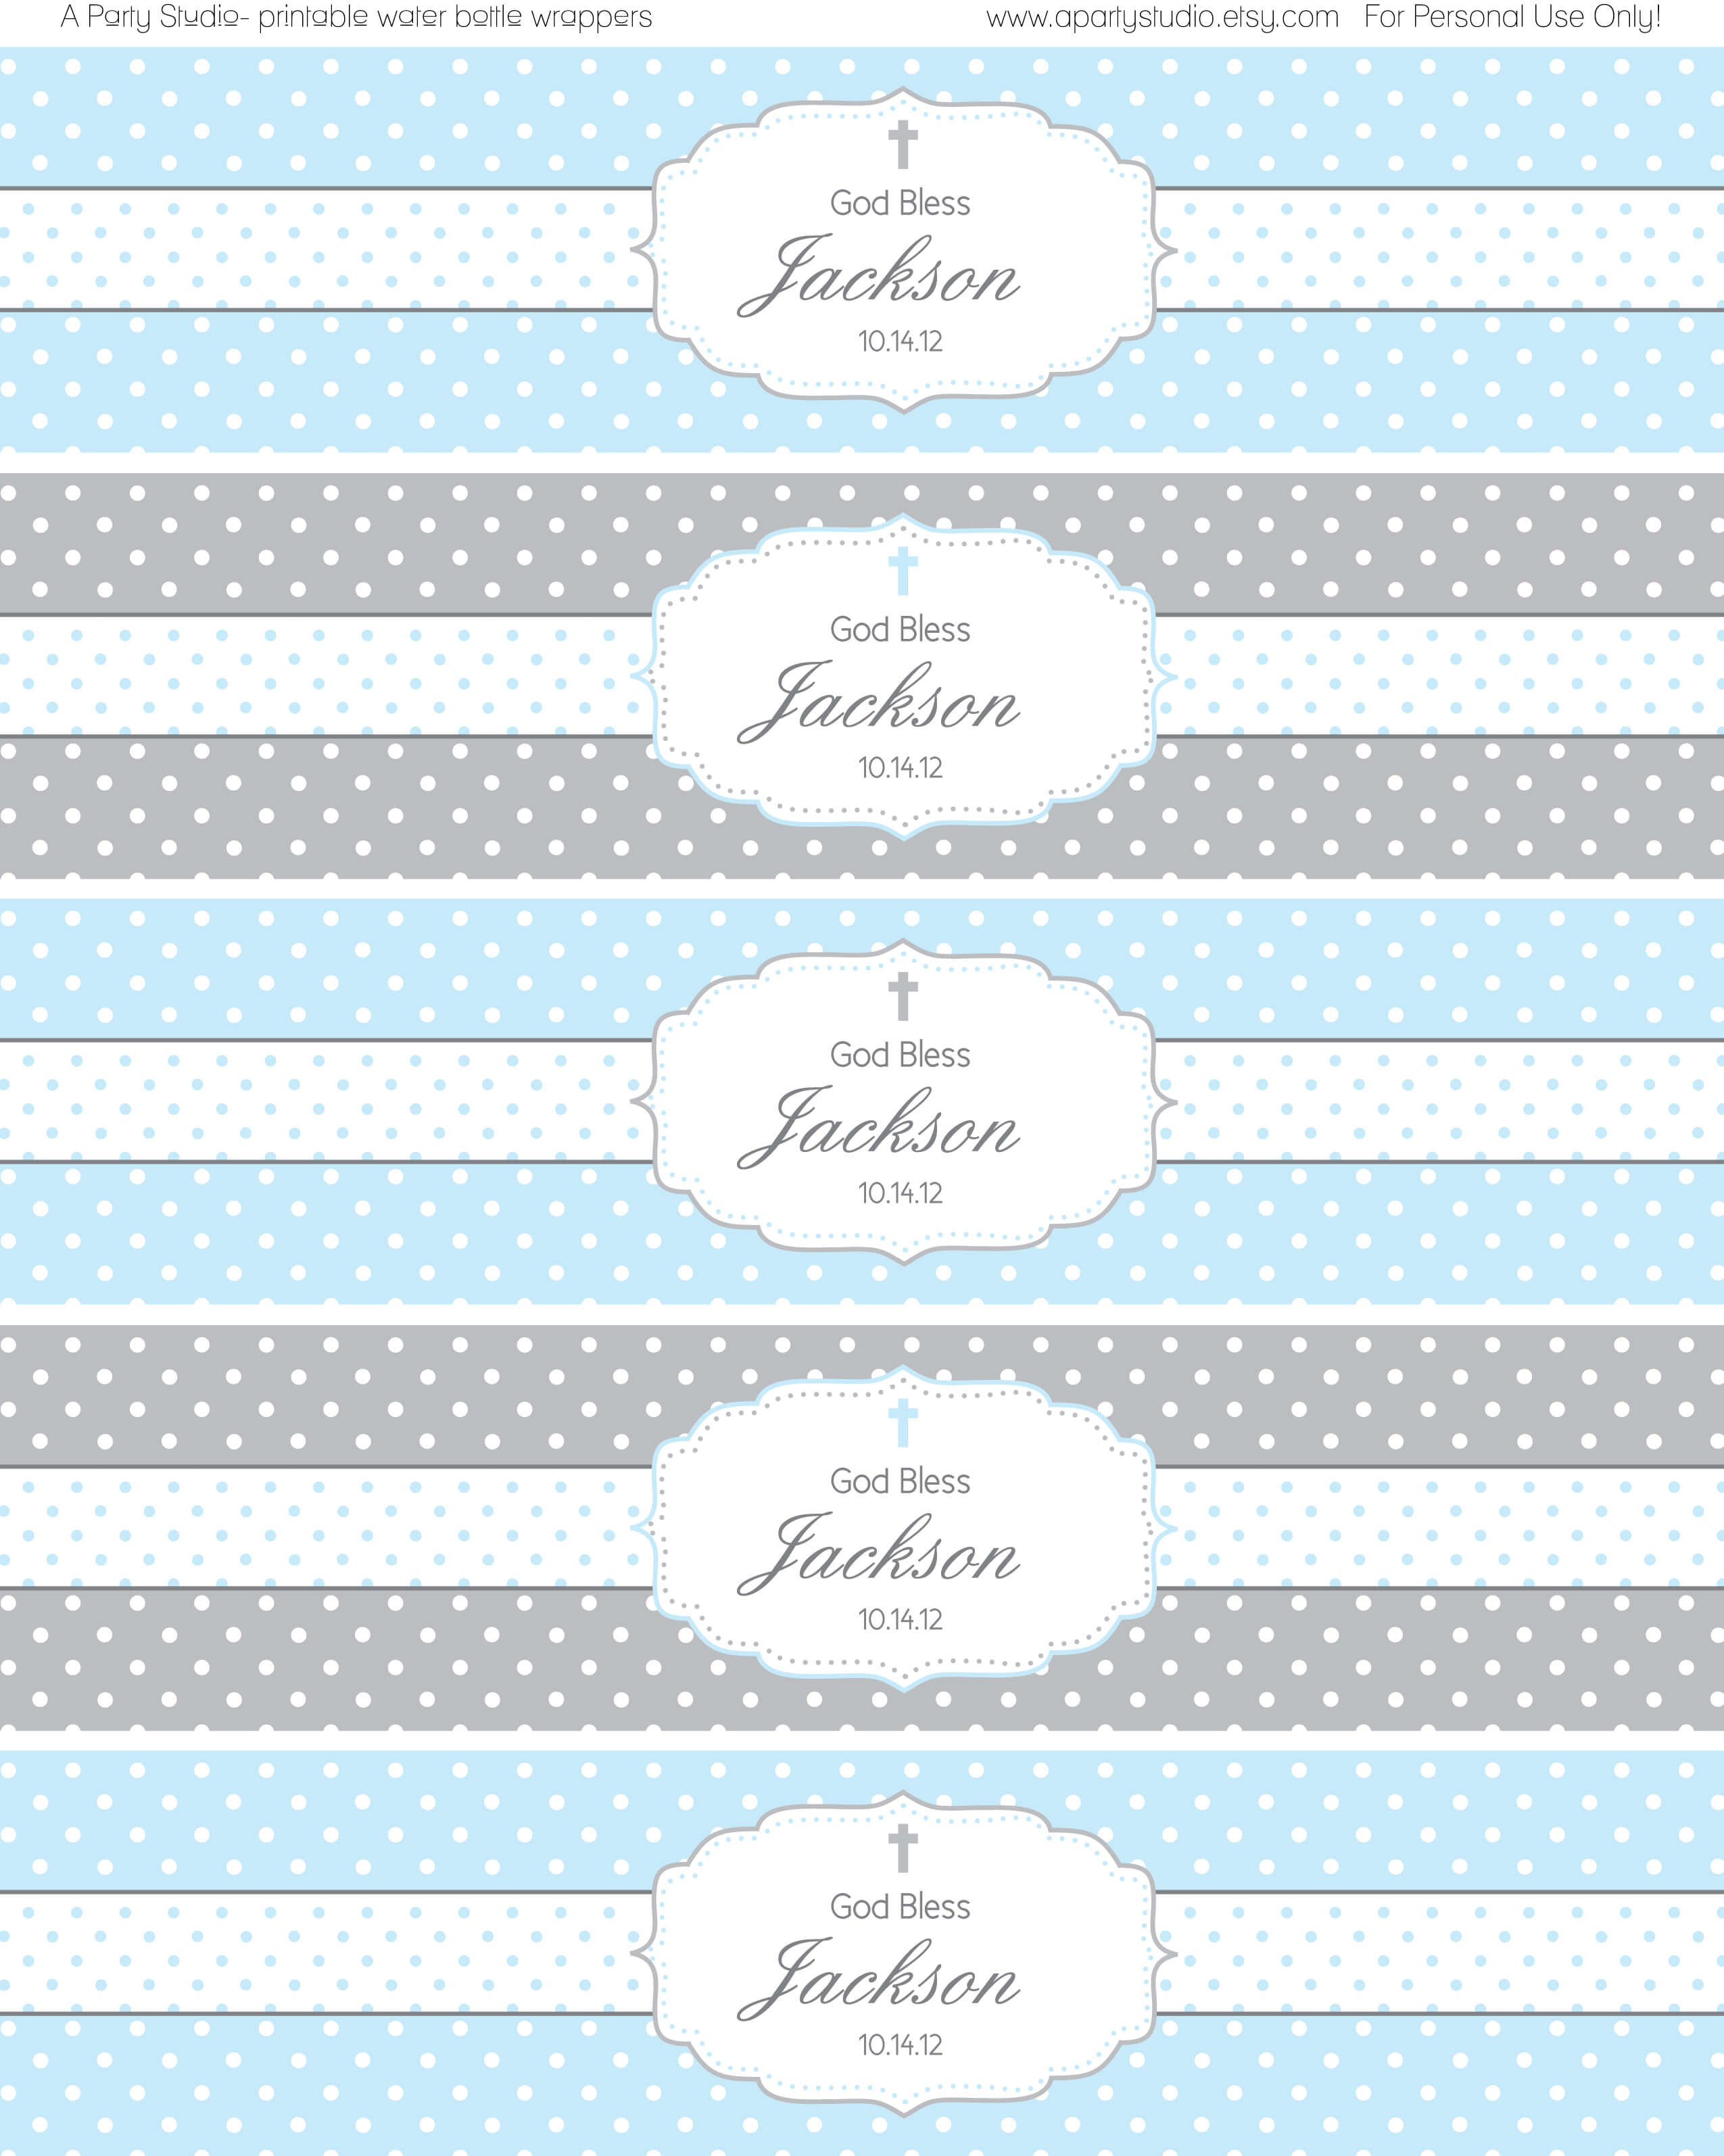 Baptism/christening | A Party Studio With Regard To Christening Banner Template Free